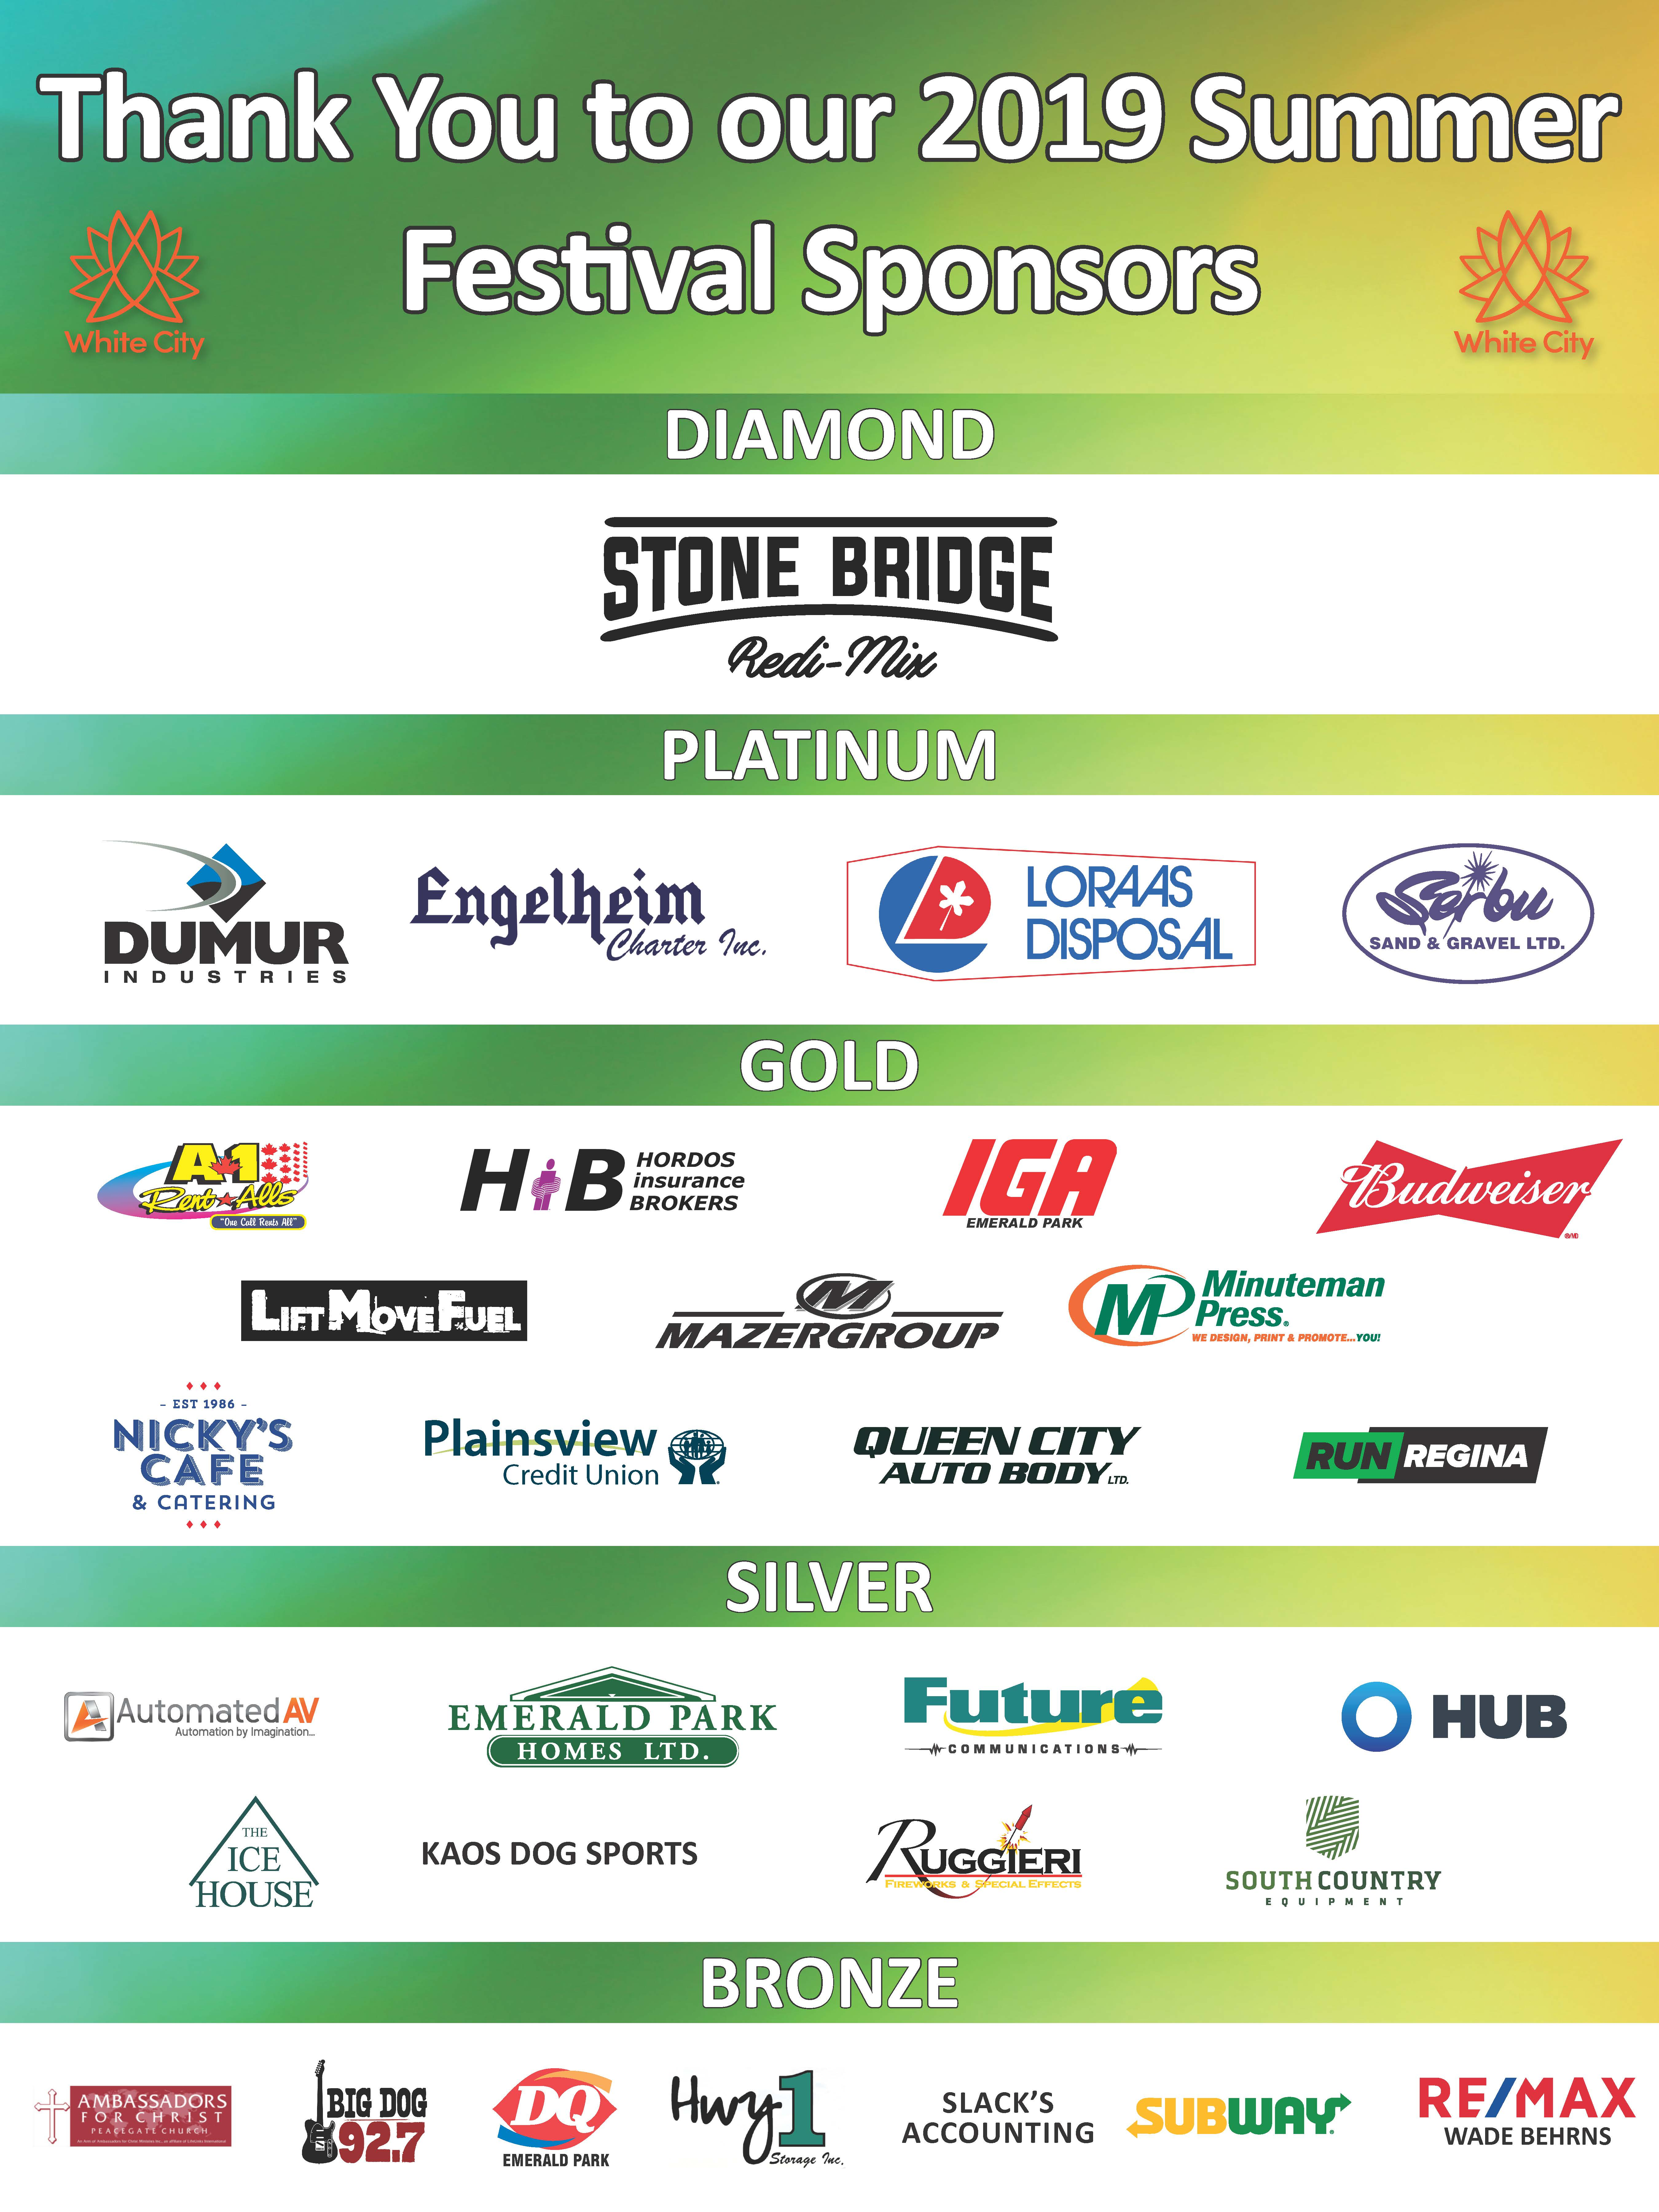 Thank you to Our Summer Festival Sponsors